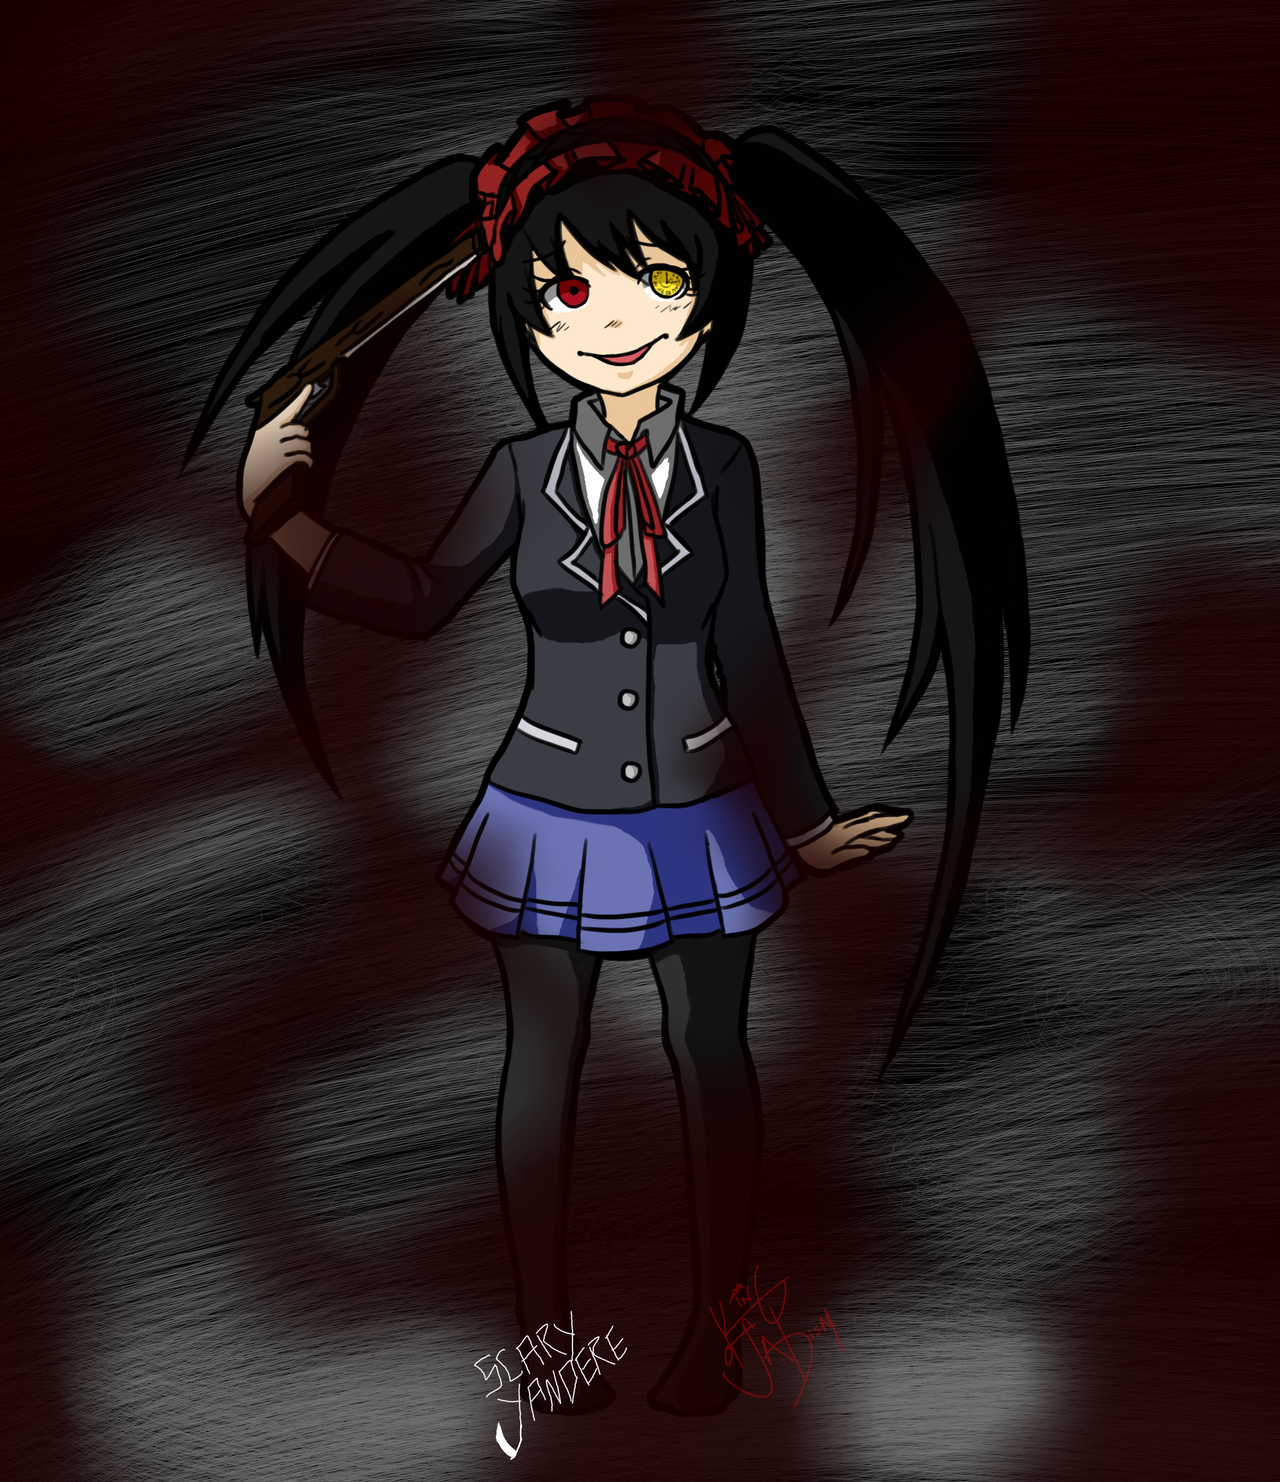 distorted nightmare kurumi tokisaki by scary yandere on distorted nightmare kurumi tokisaki by scary yandere